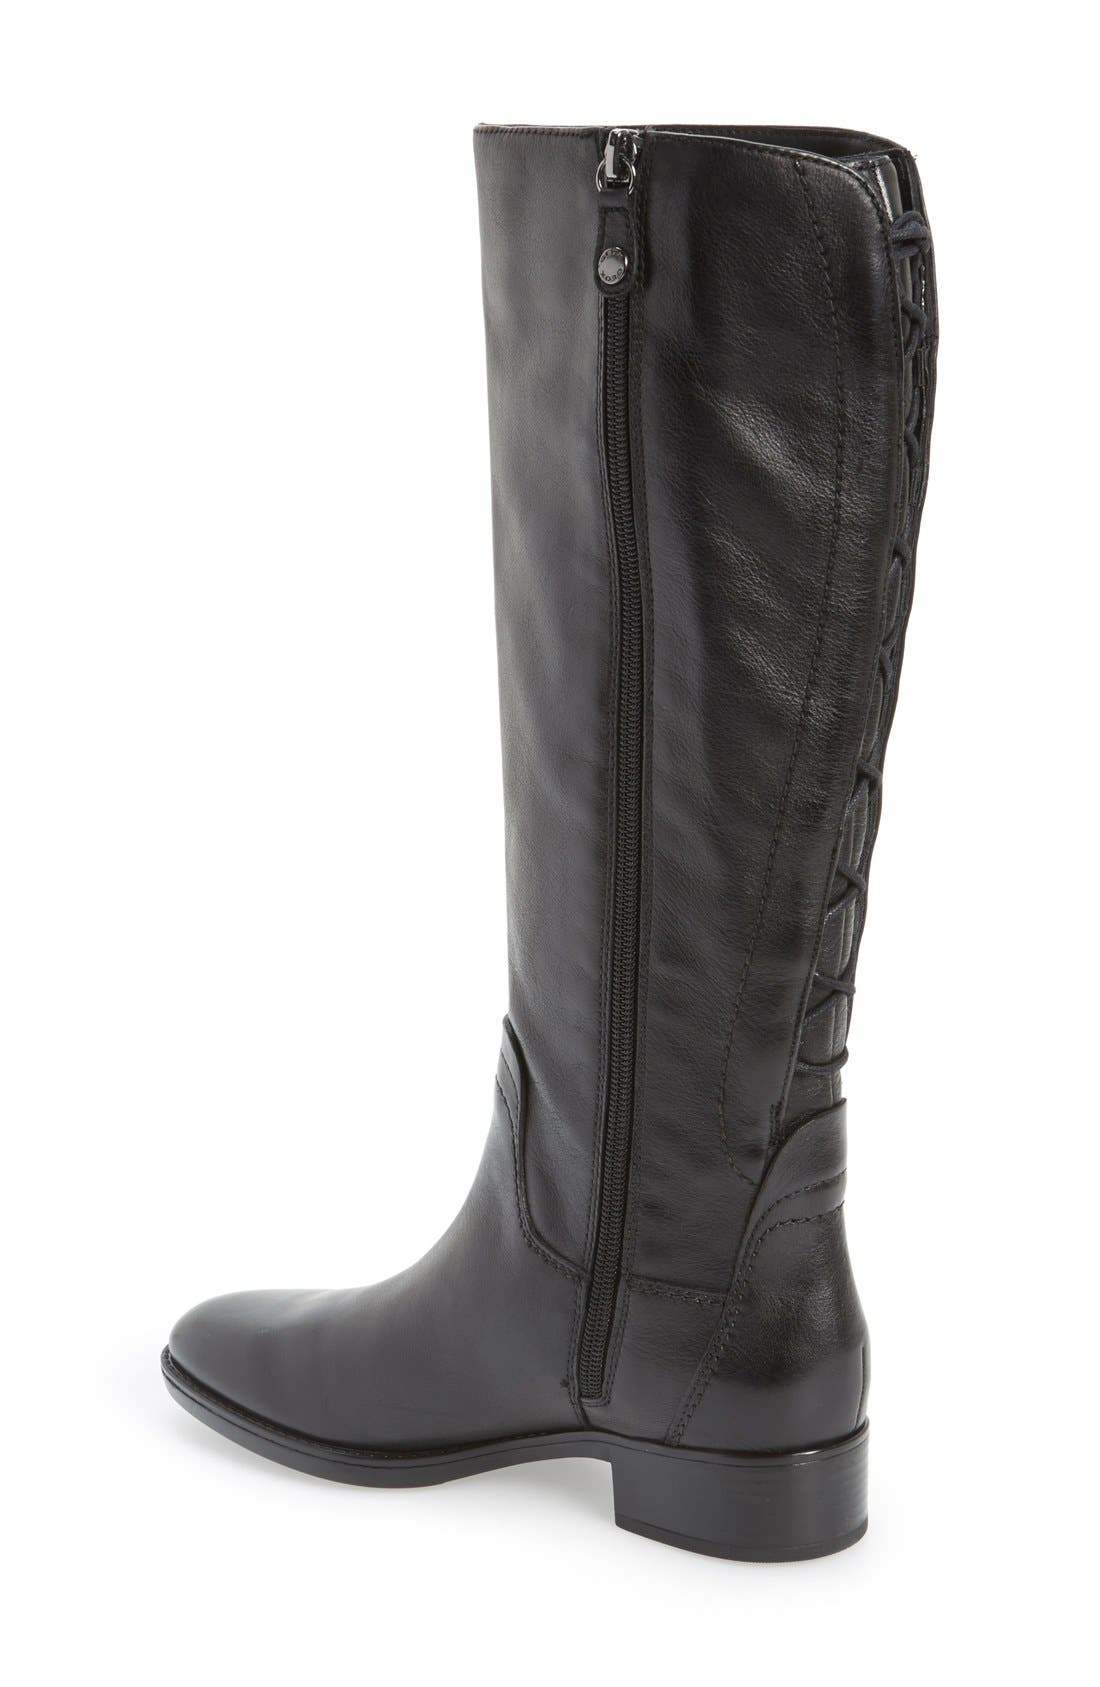 Alternate Image 2  - Geox 'Felicity' Adjustable Shaft Tall Riding Boot (Women)